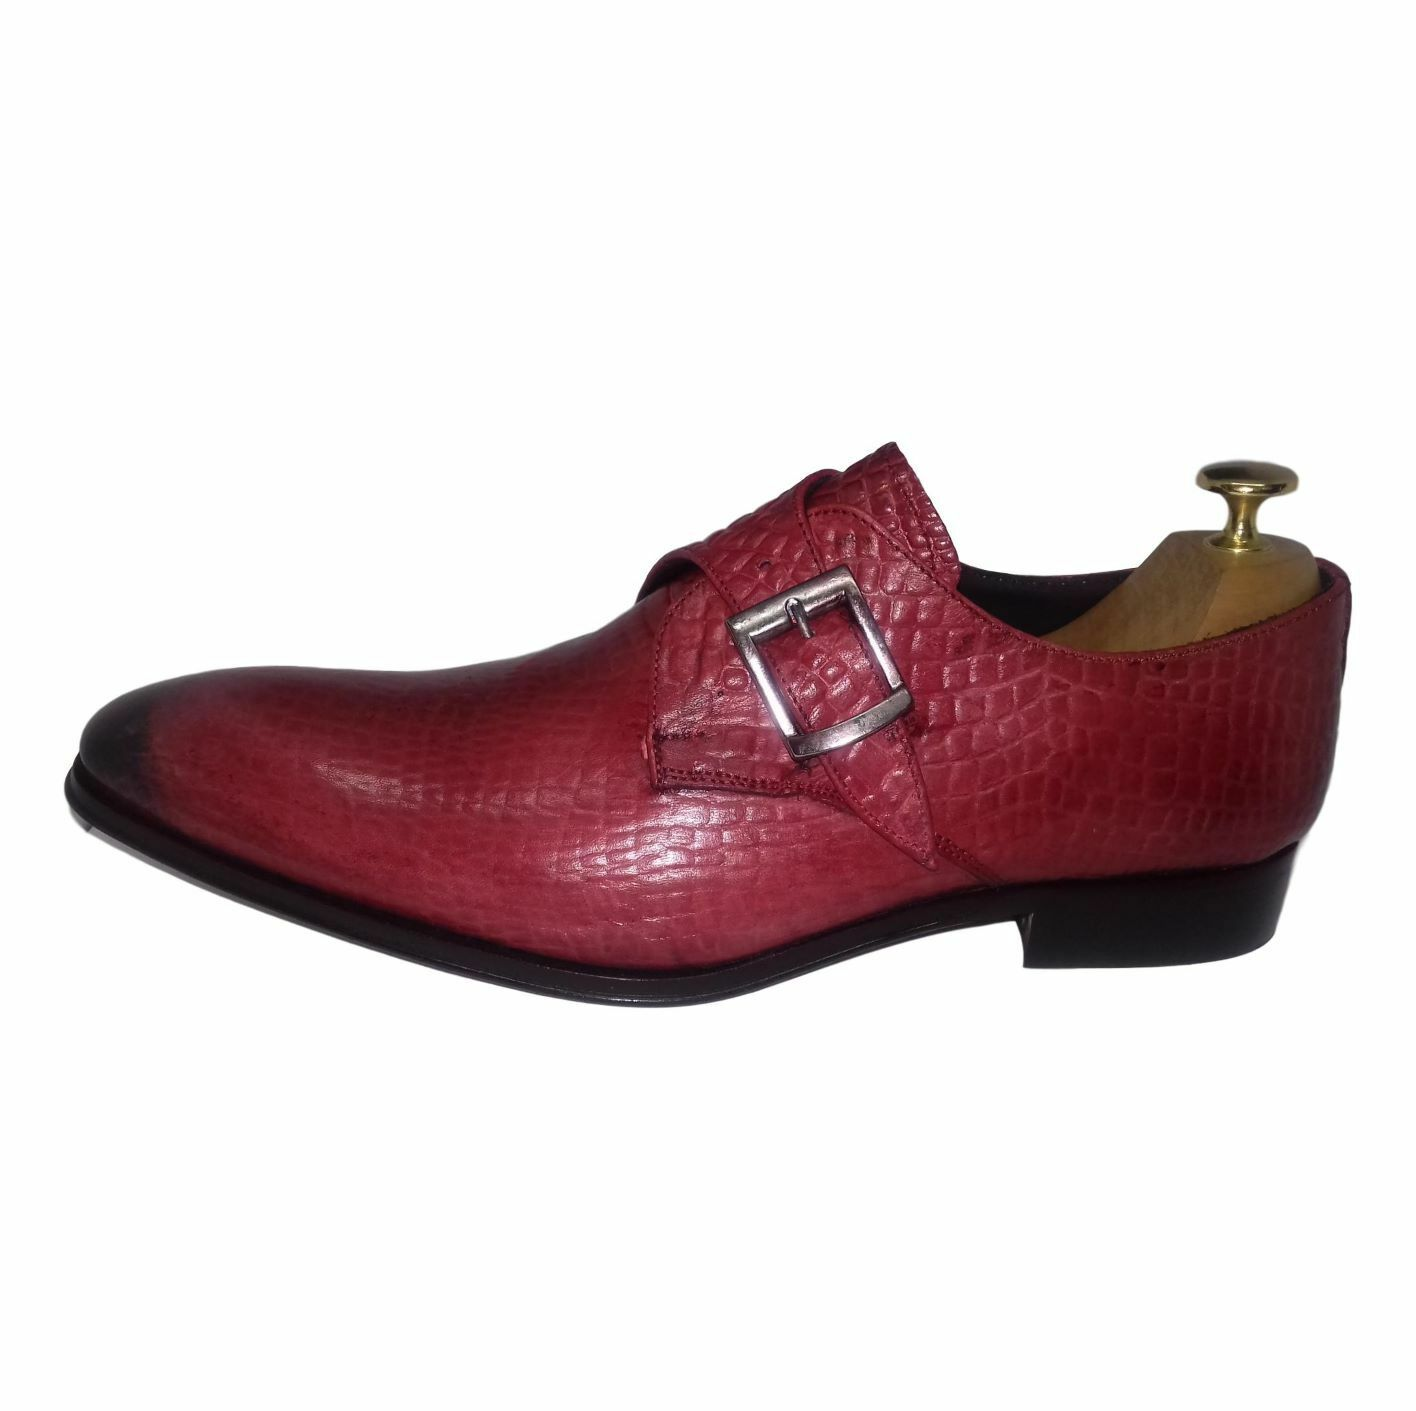 CHAUSSURE ITALIENNE A BOUCLE LUXE HOMME NEUF CUIR FAÇON CROCO rojo